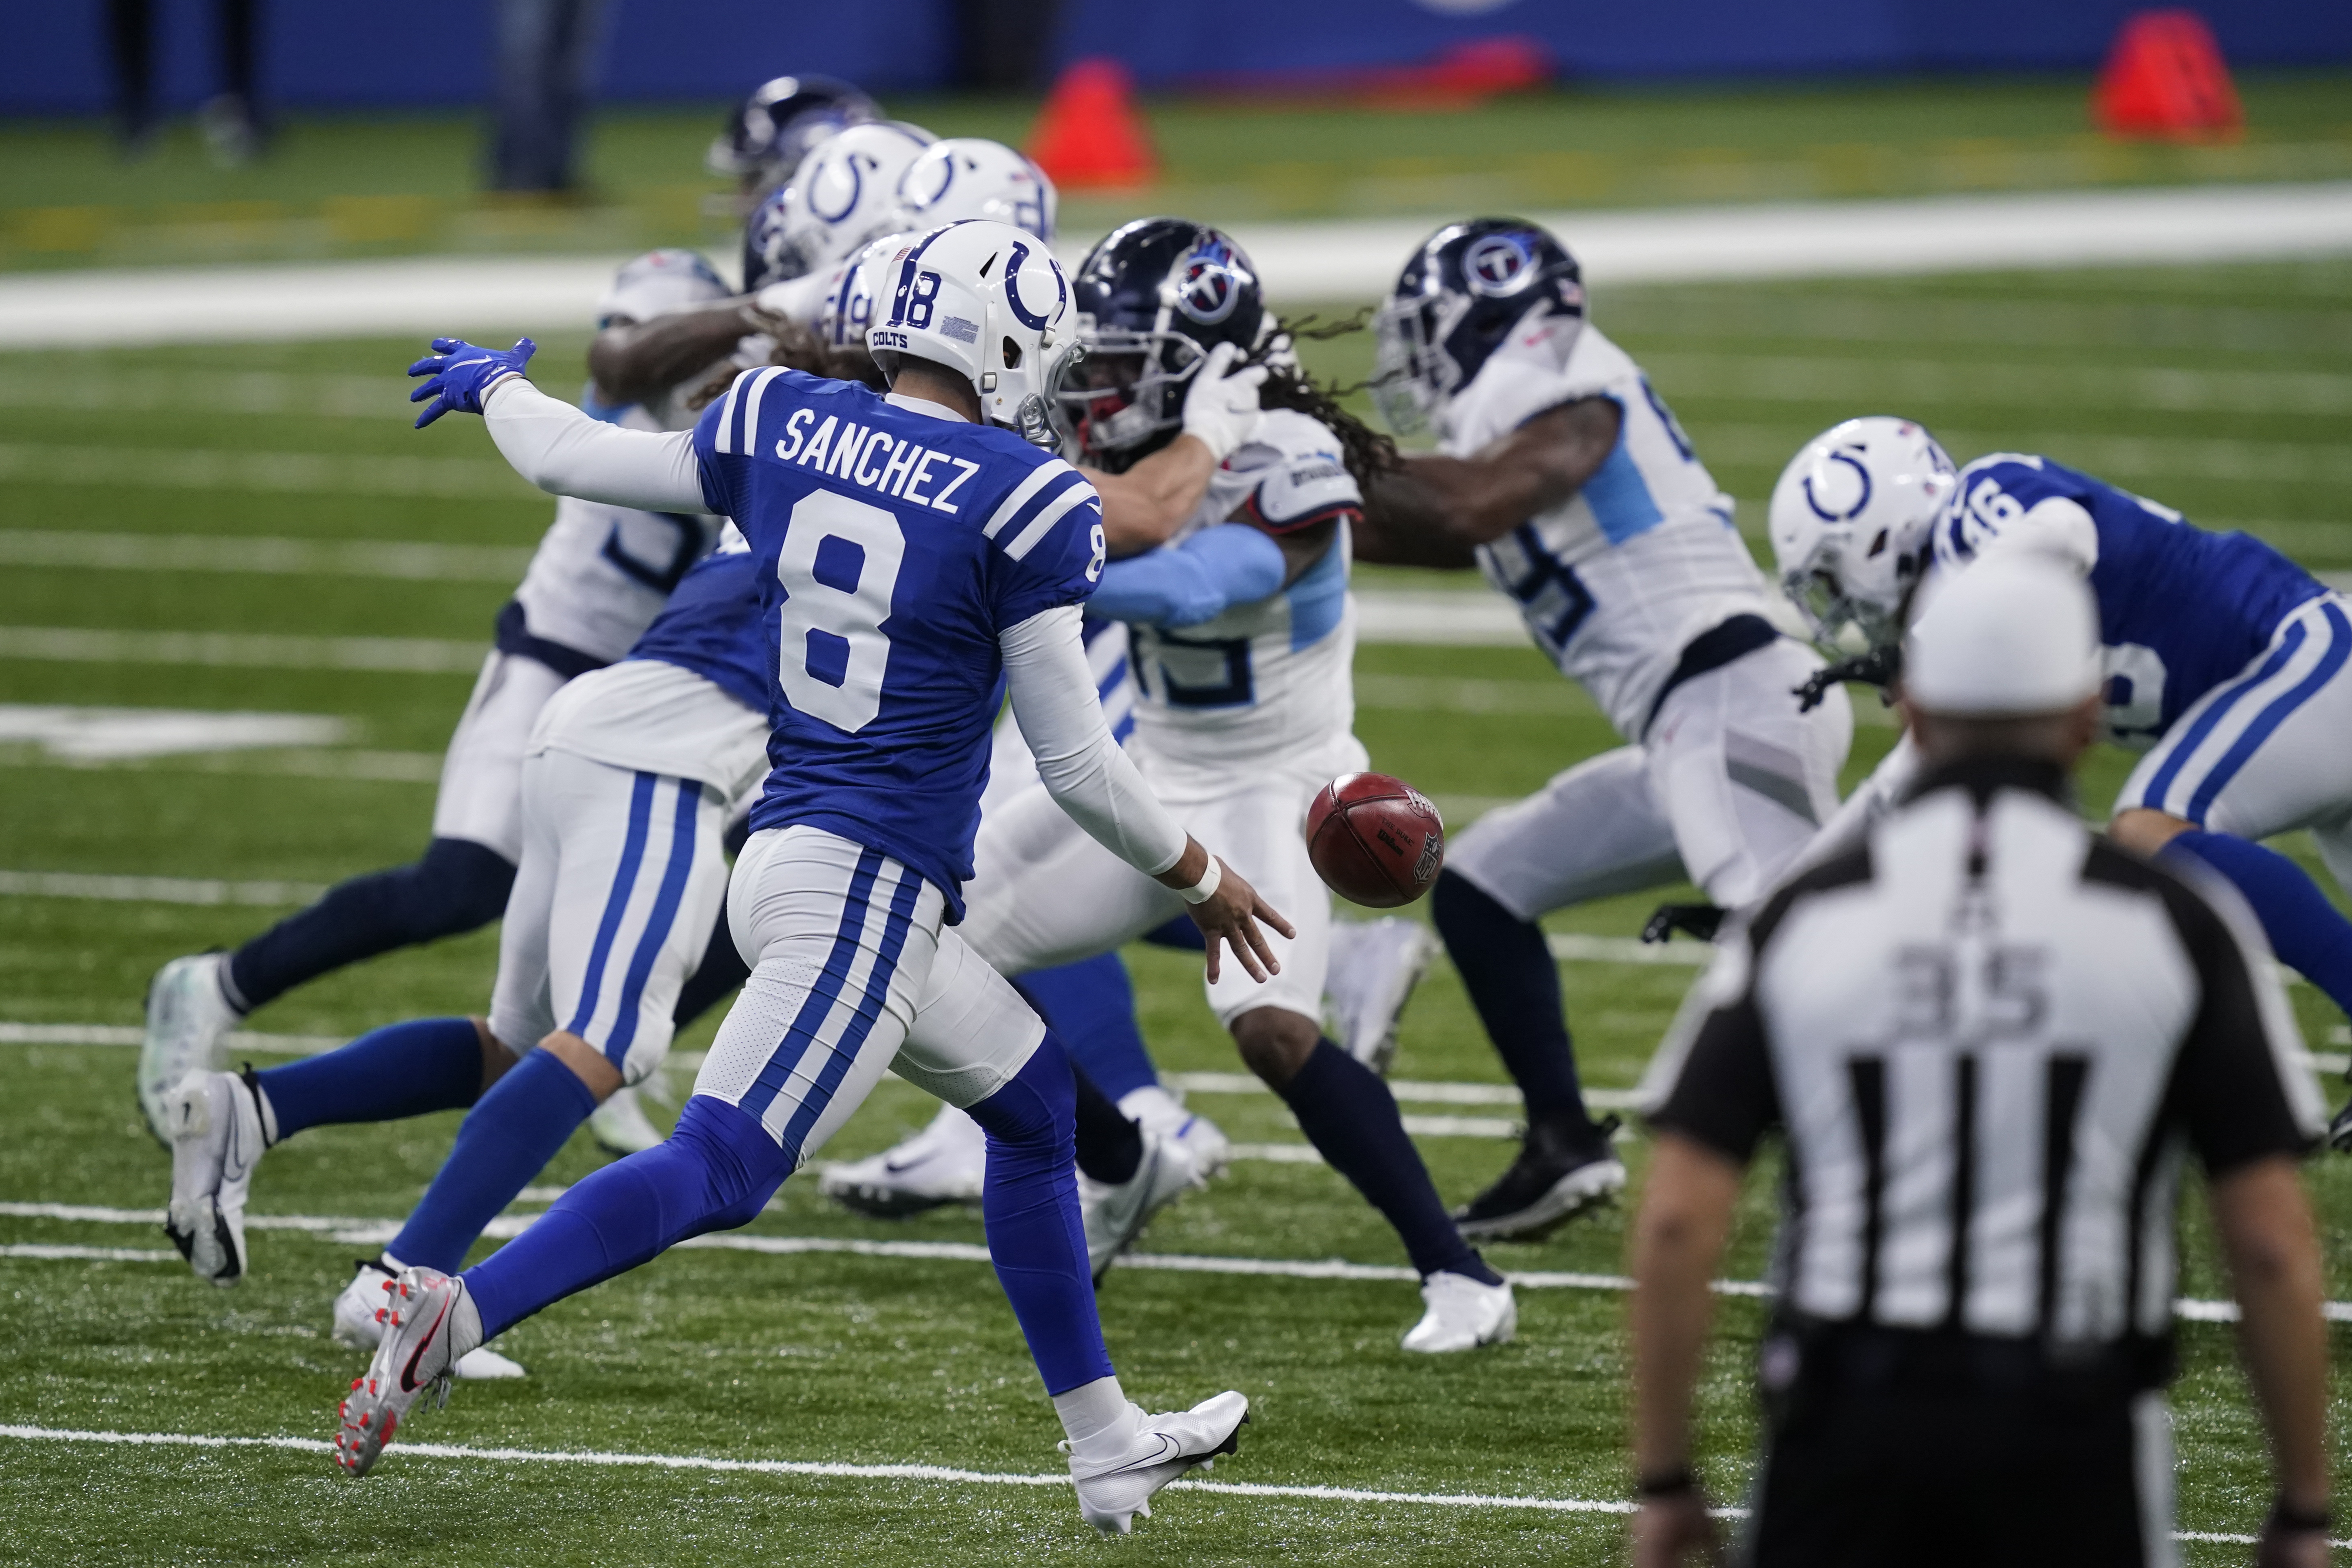 The Latest Lions Kicker Prater Ties Nfl Record